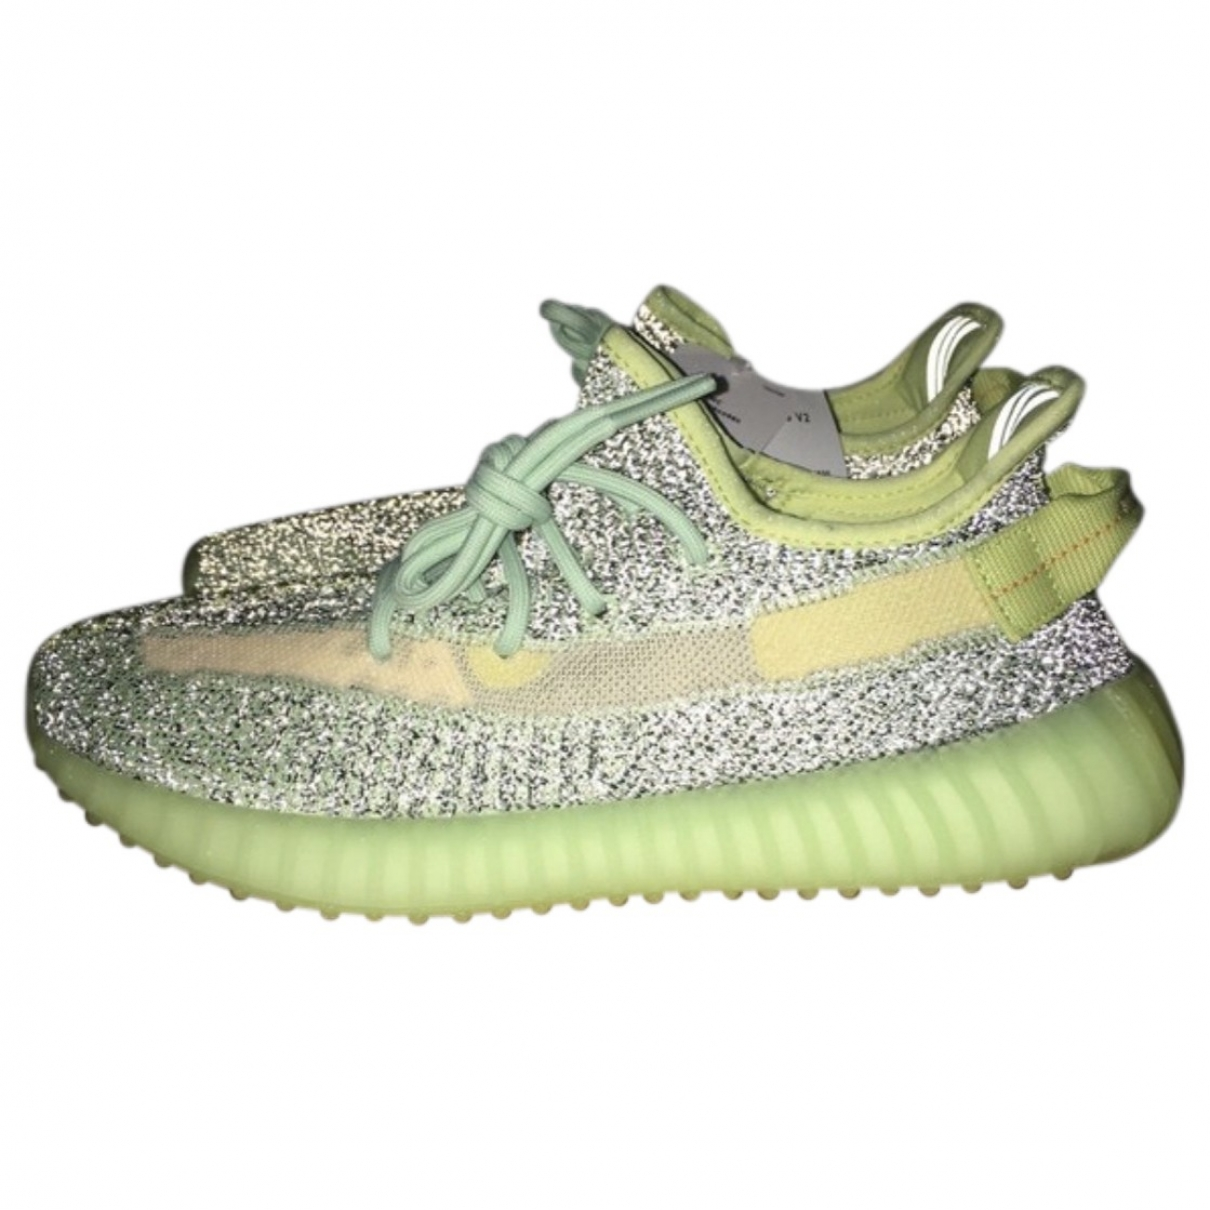 Yeezy X Adidas - Baskets Boost 350 V2 pour homme en toile - vert